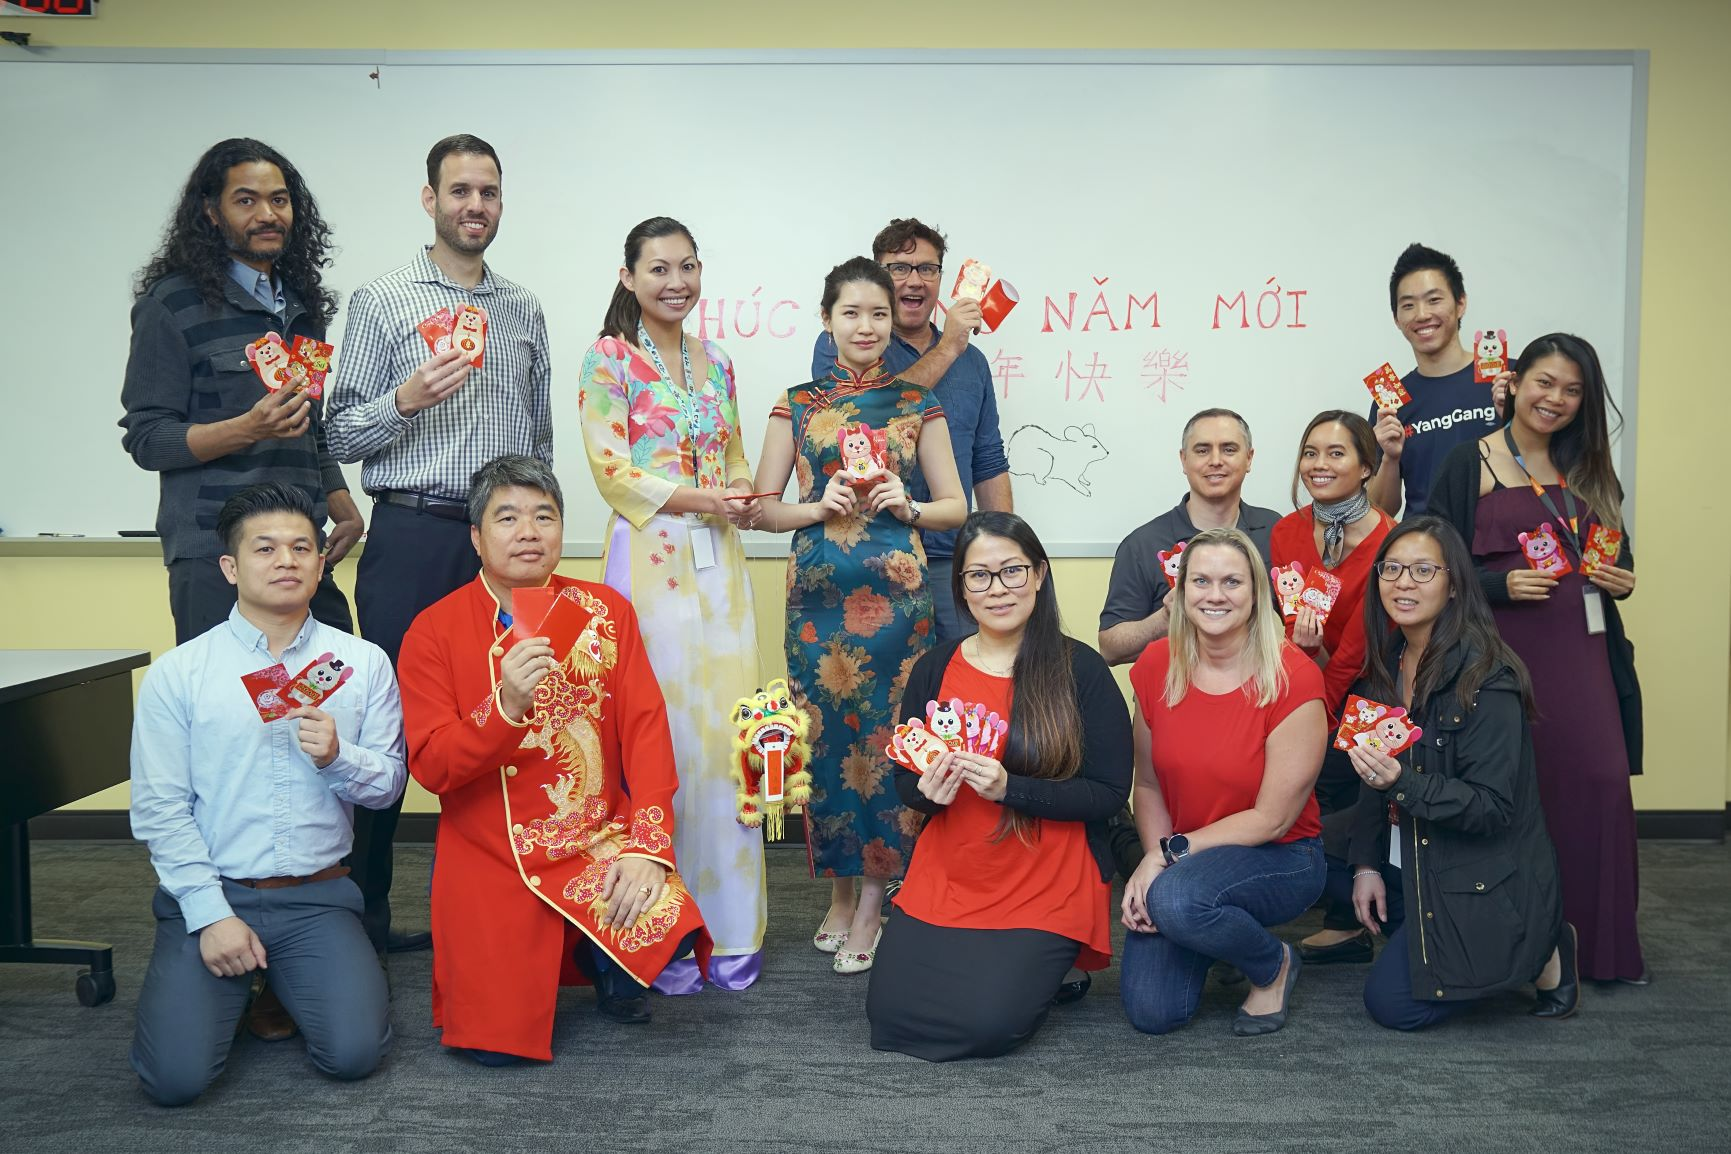 Celebrating the Lunar New Year at OTA